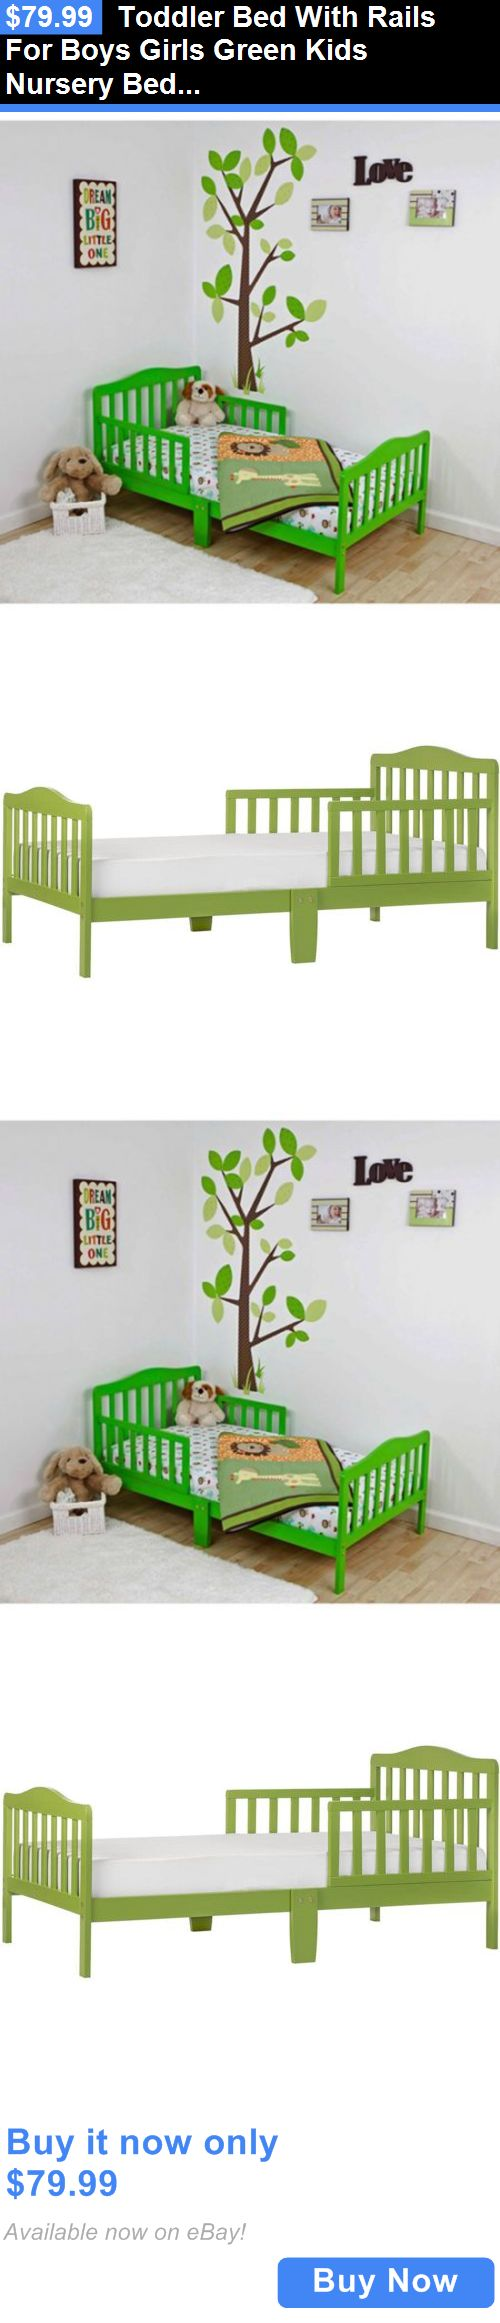 Kids Furniture: Toddler Bed With Rails For Boys Girls Green Kids Nursery Bed Furniture Wood BUY IT NOW ONLY: $79.99